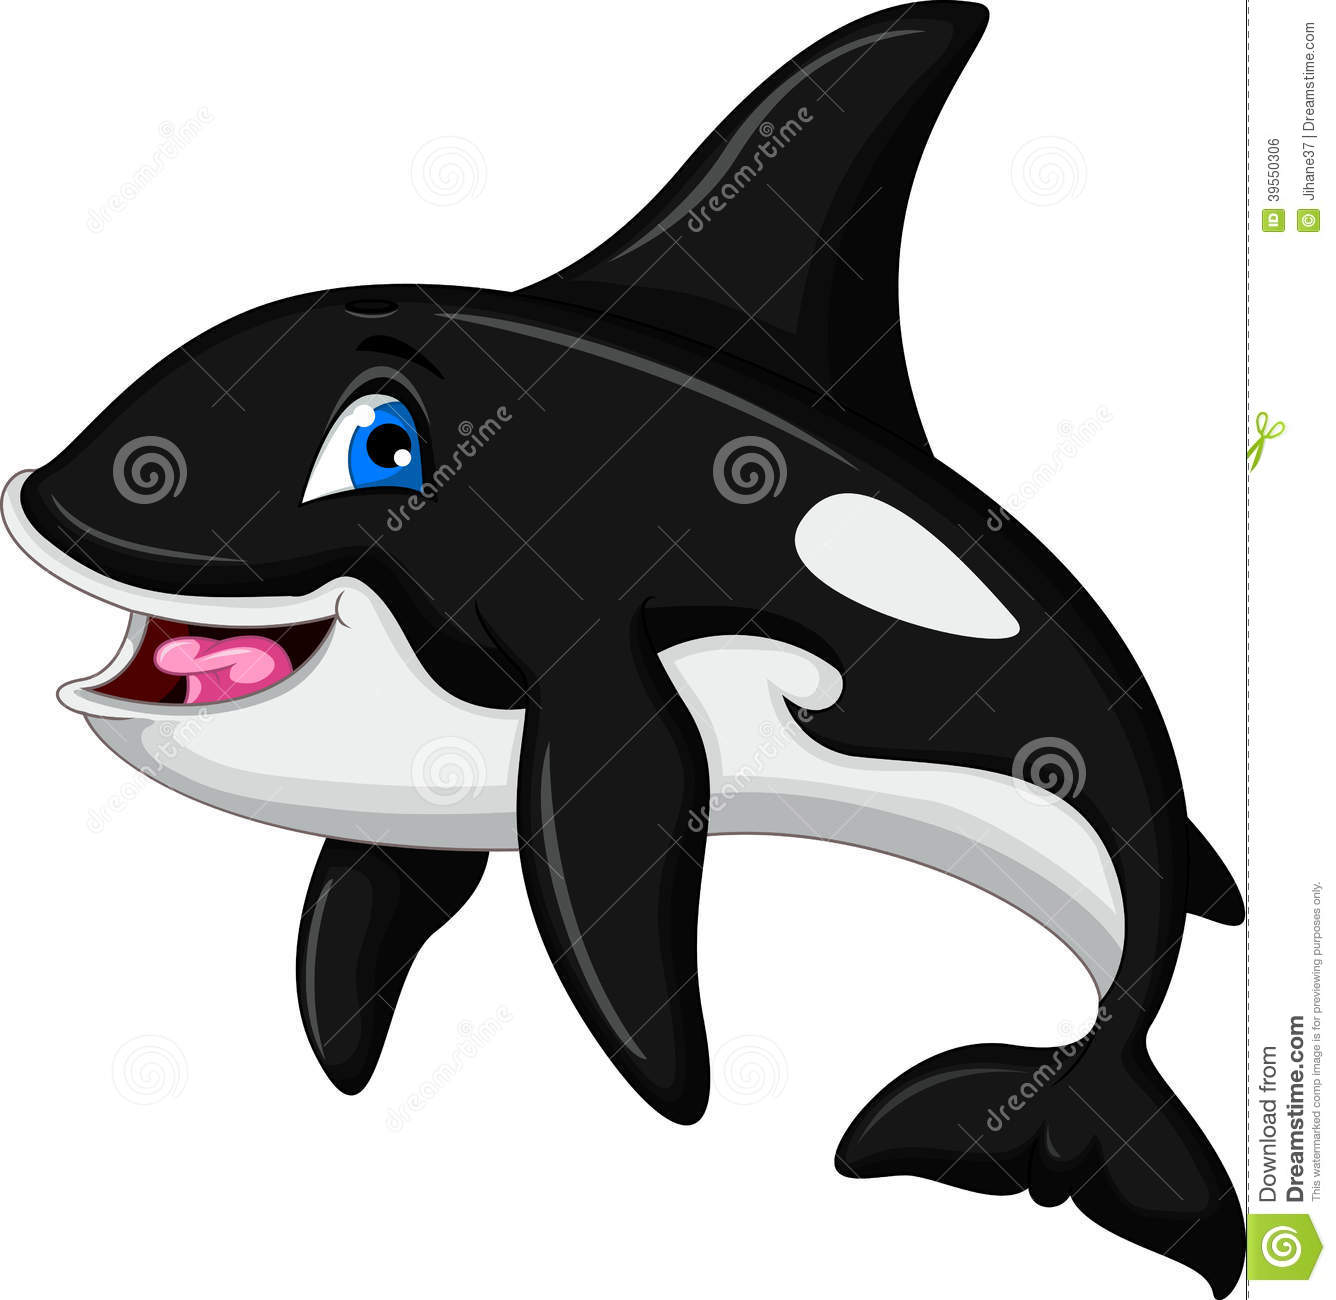 Cute Killer Whale Cartoon Stock Illustration - Image: 39550306